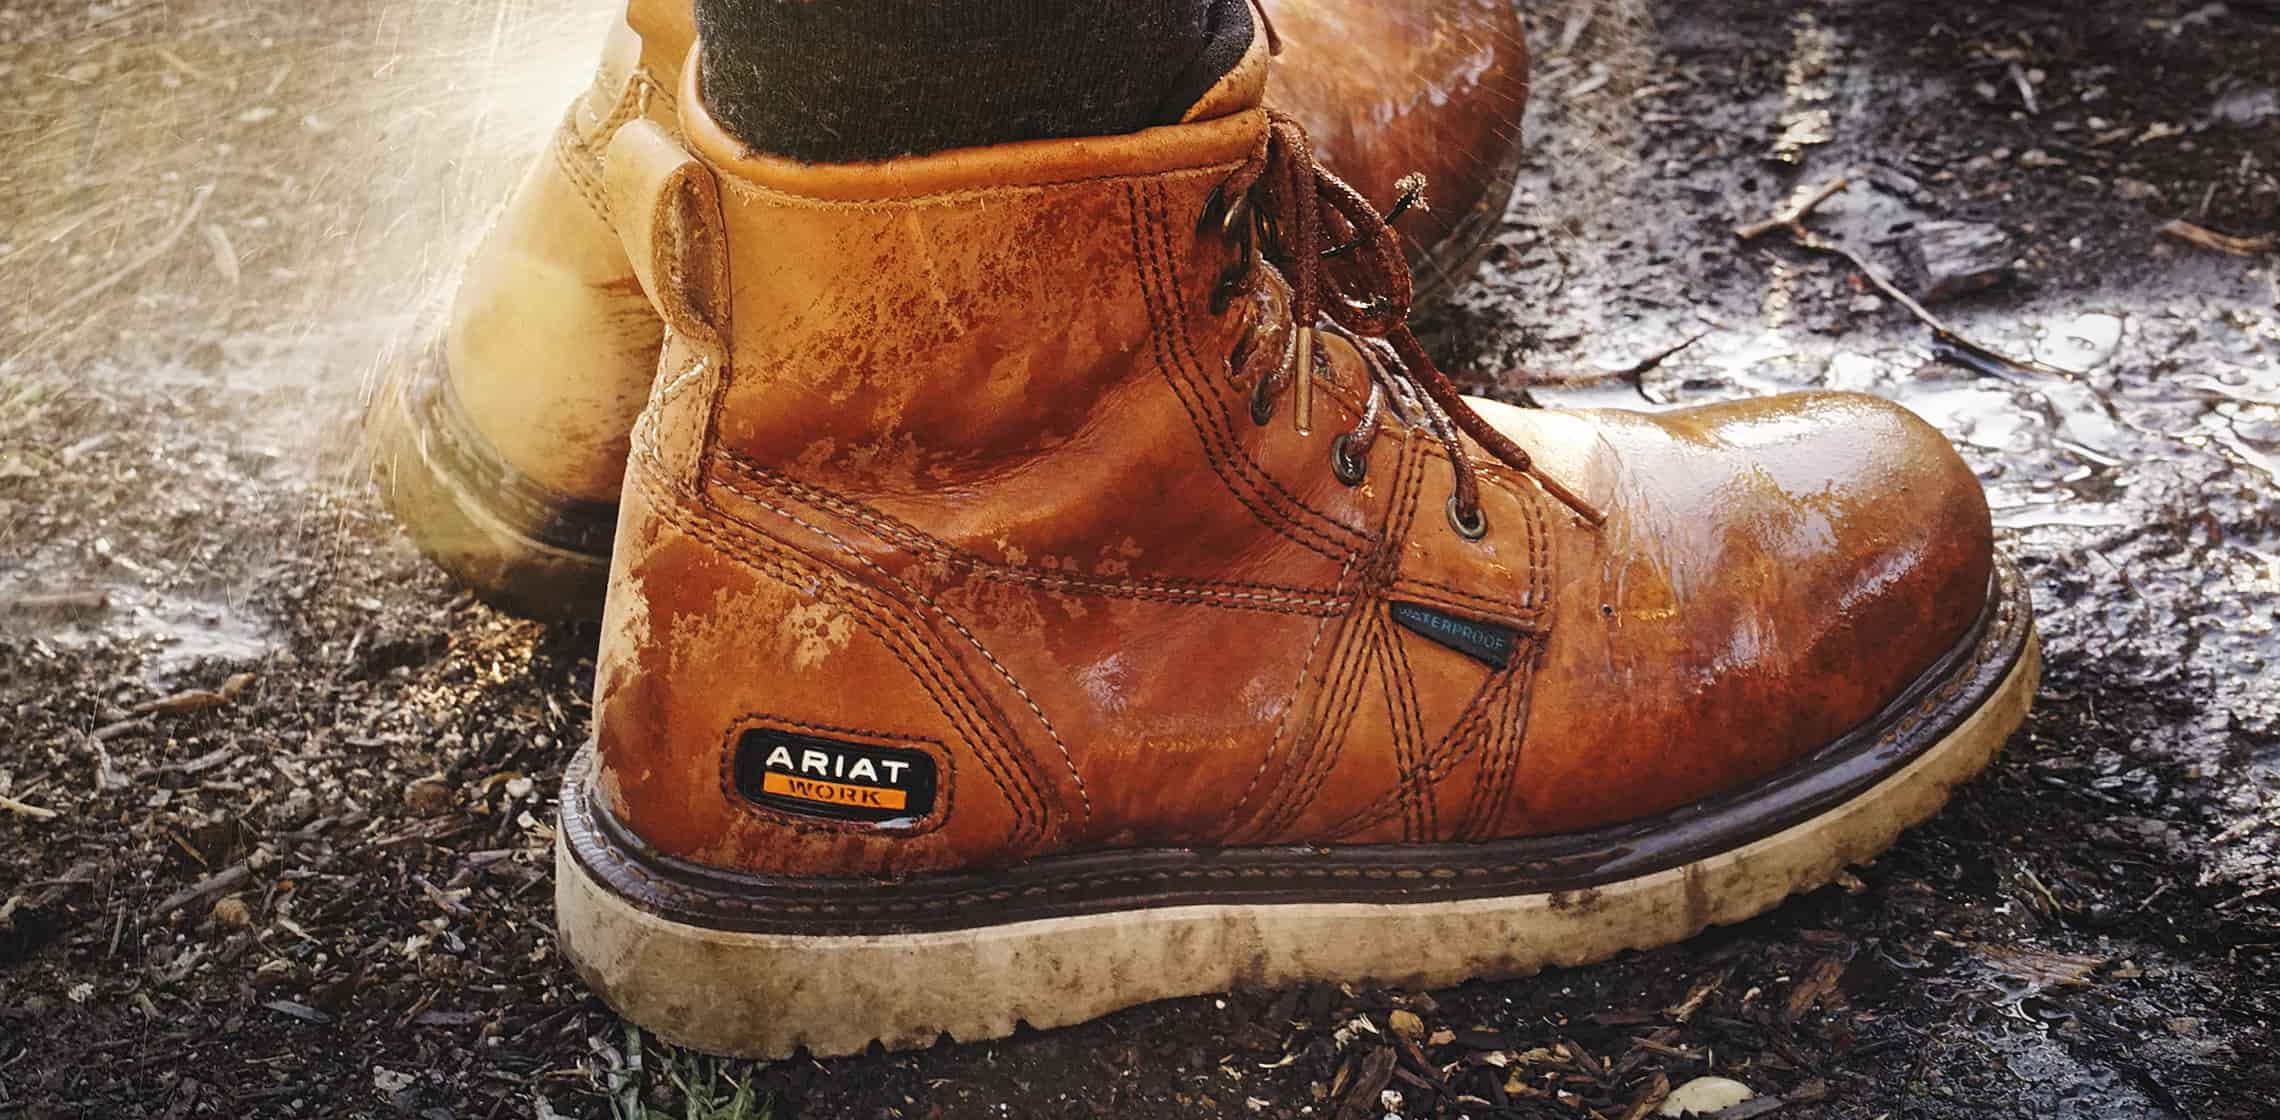 Photo of Ariat workboots in-use